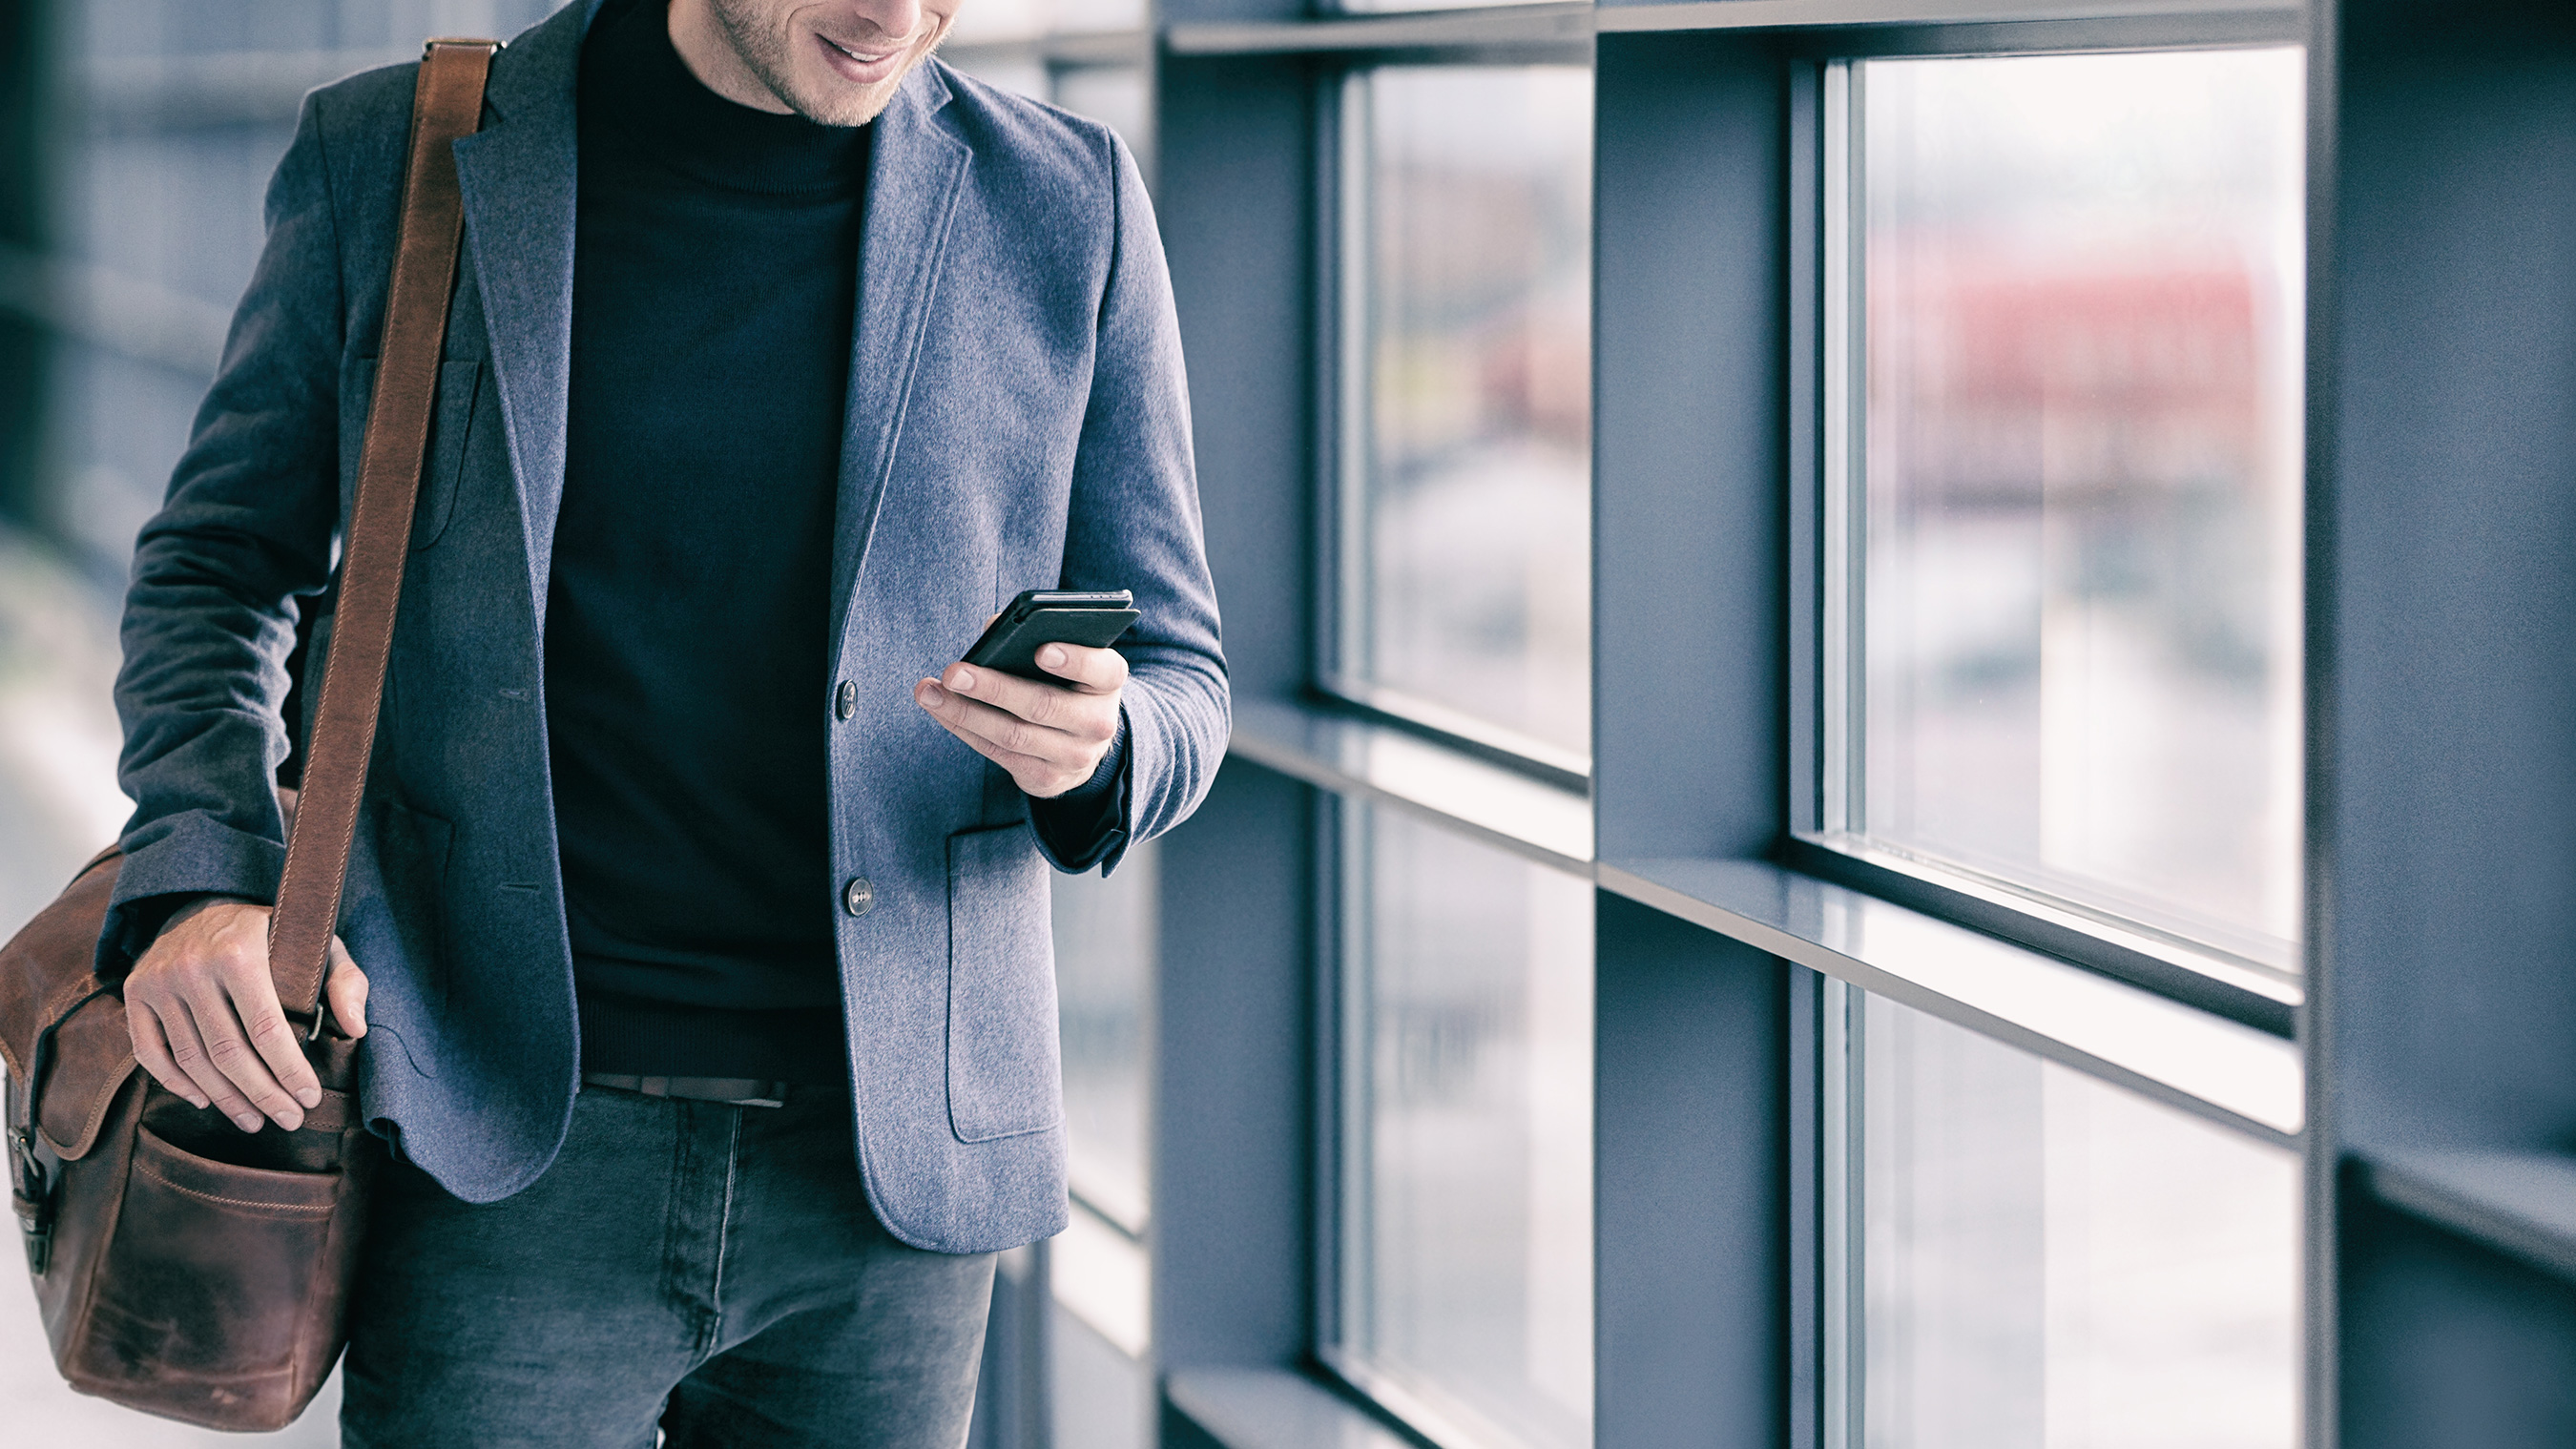 Is texting from a personal mobile phone for business a good idea?